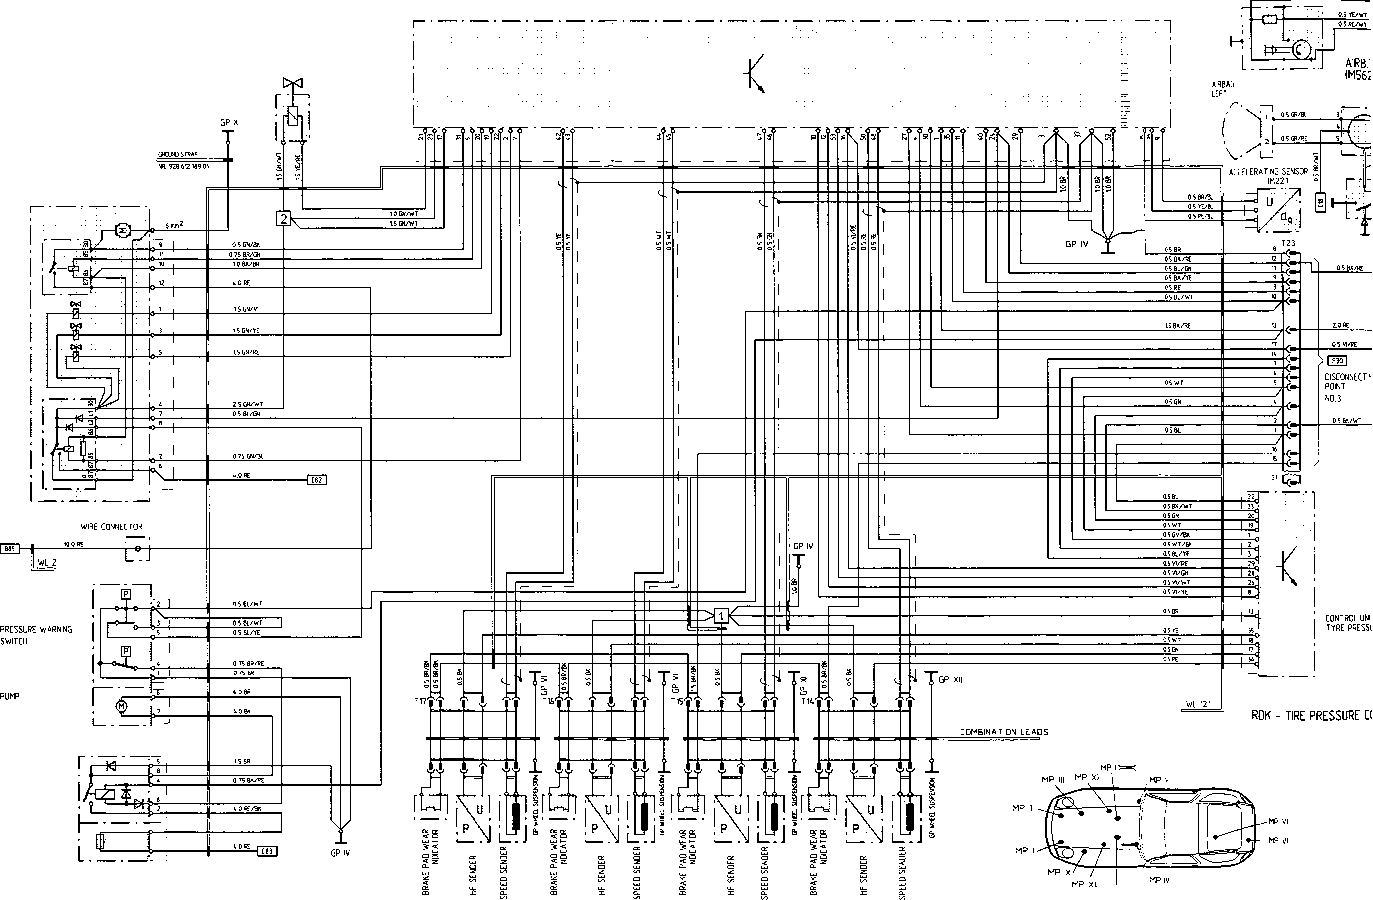 S Model 91 Sheet - Flow Diagram